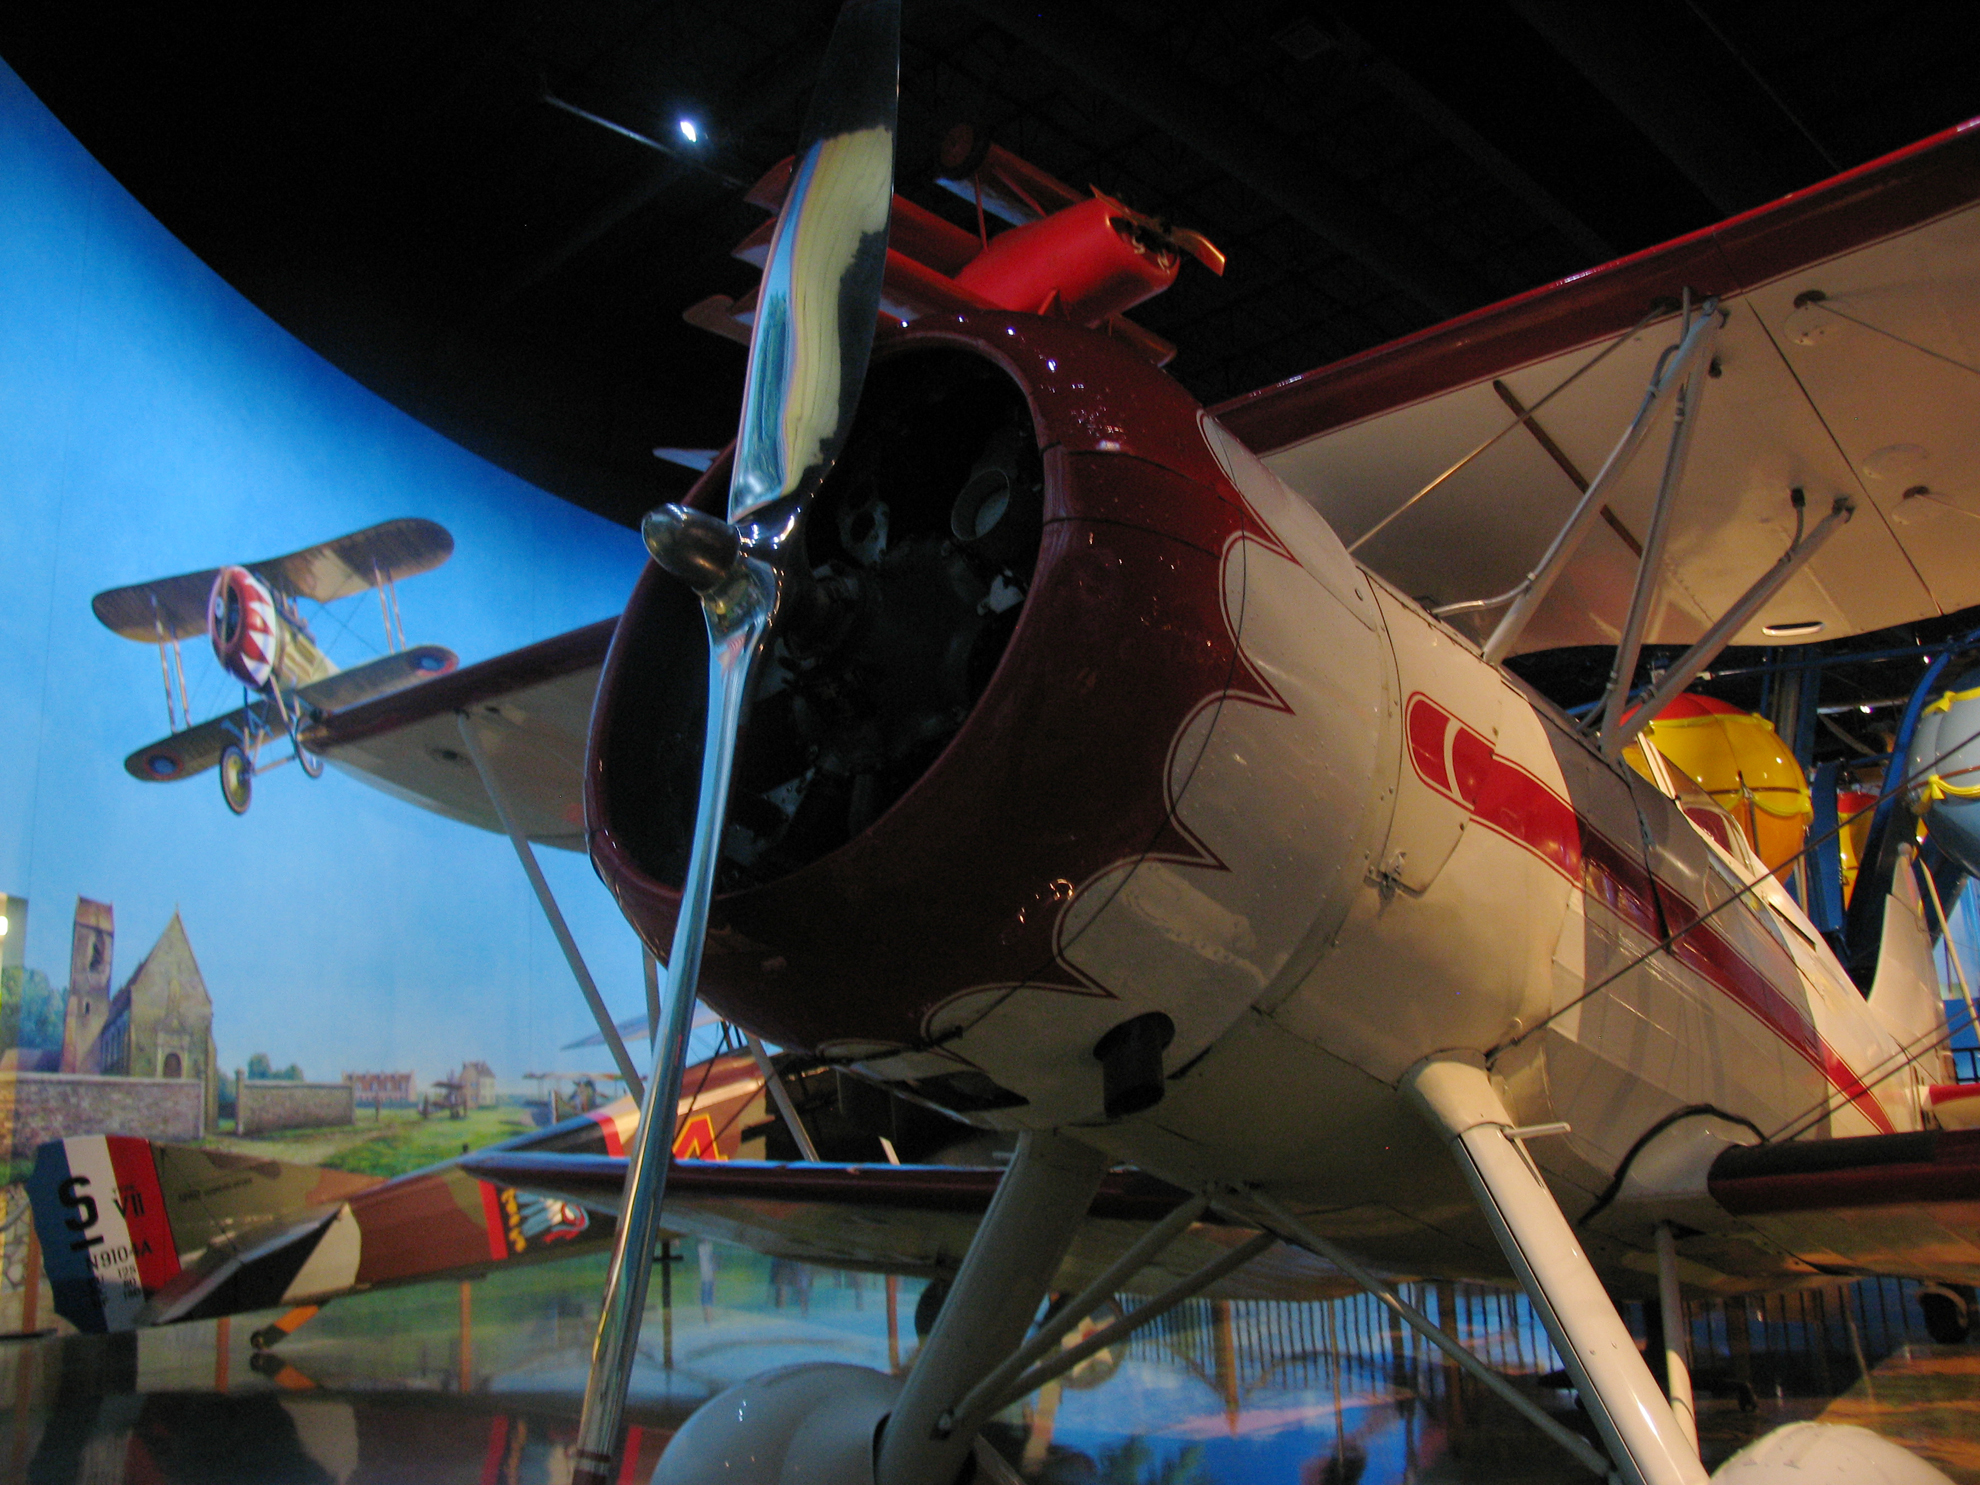 One of only six WACO VPF planes ever built were used by the Guatemalan Air Force; it's pictured in the mural behind it